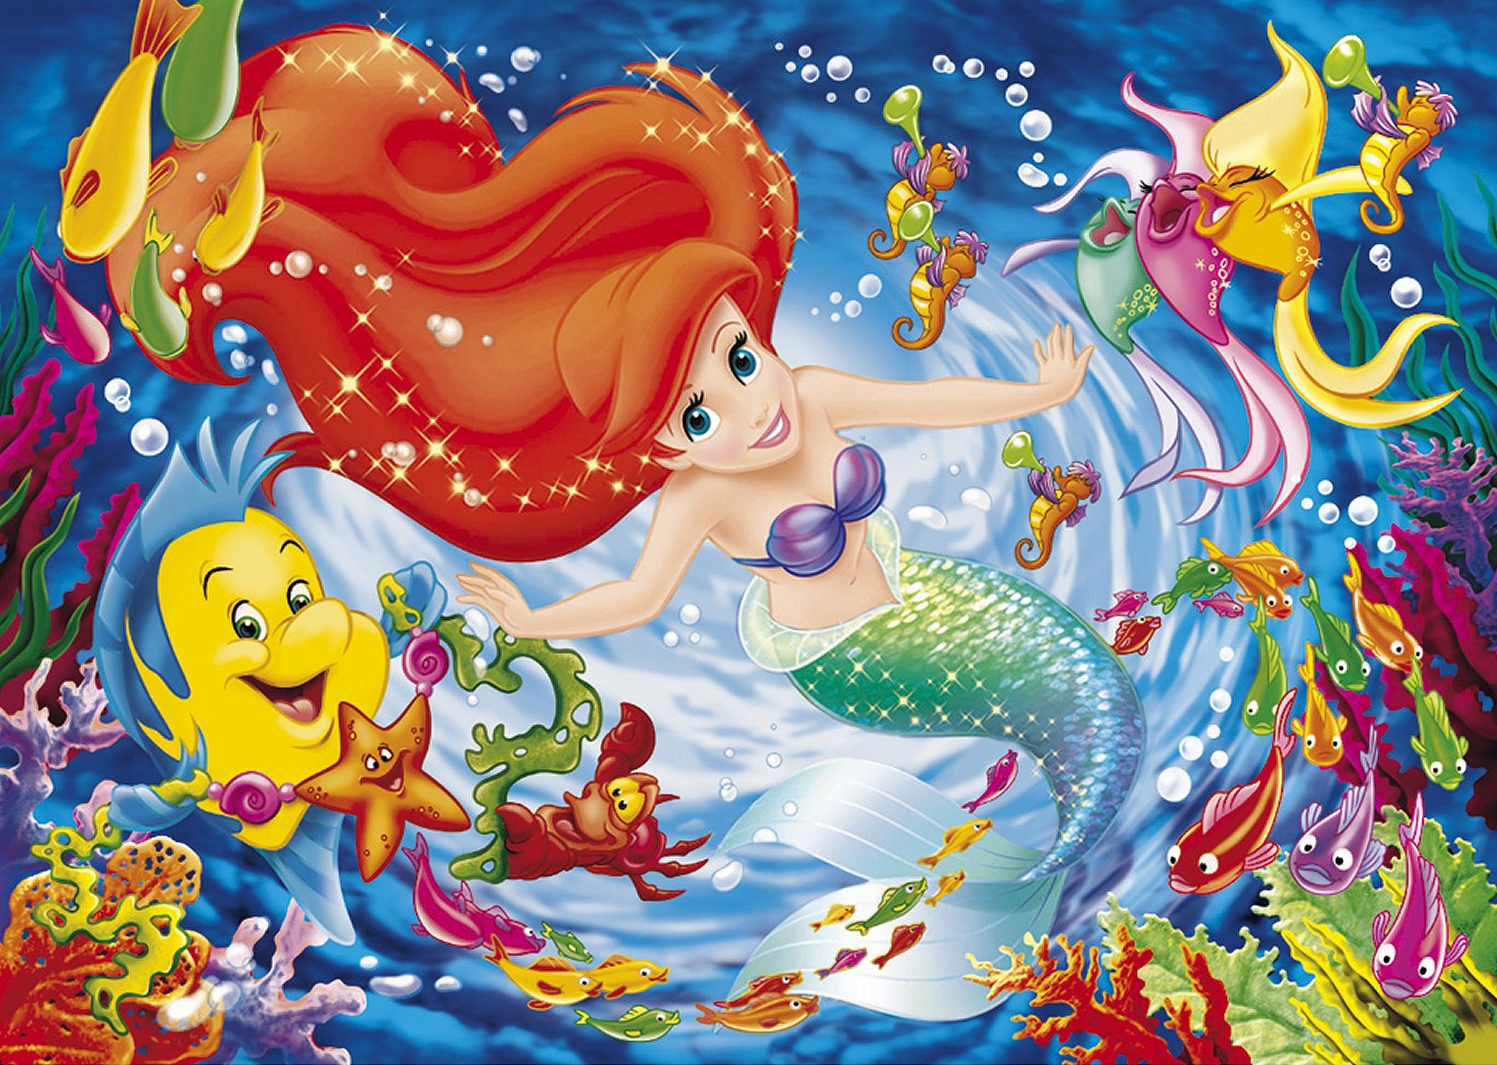 Free Download The Little Mermaid Images Ariel Hd Wallpaper And